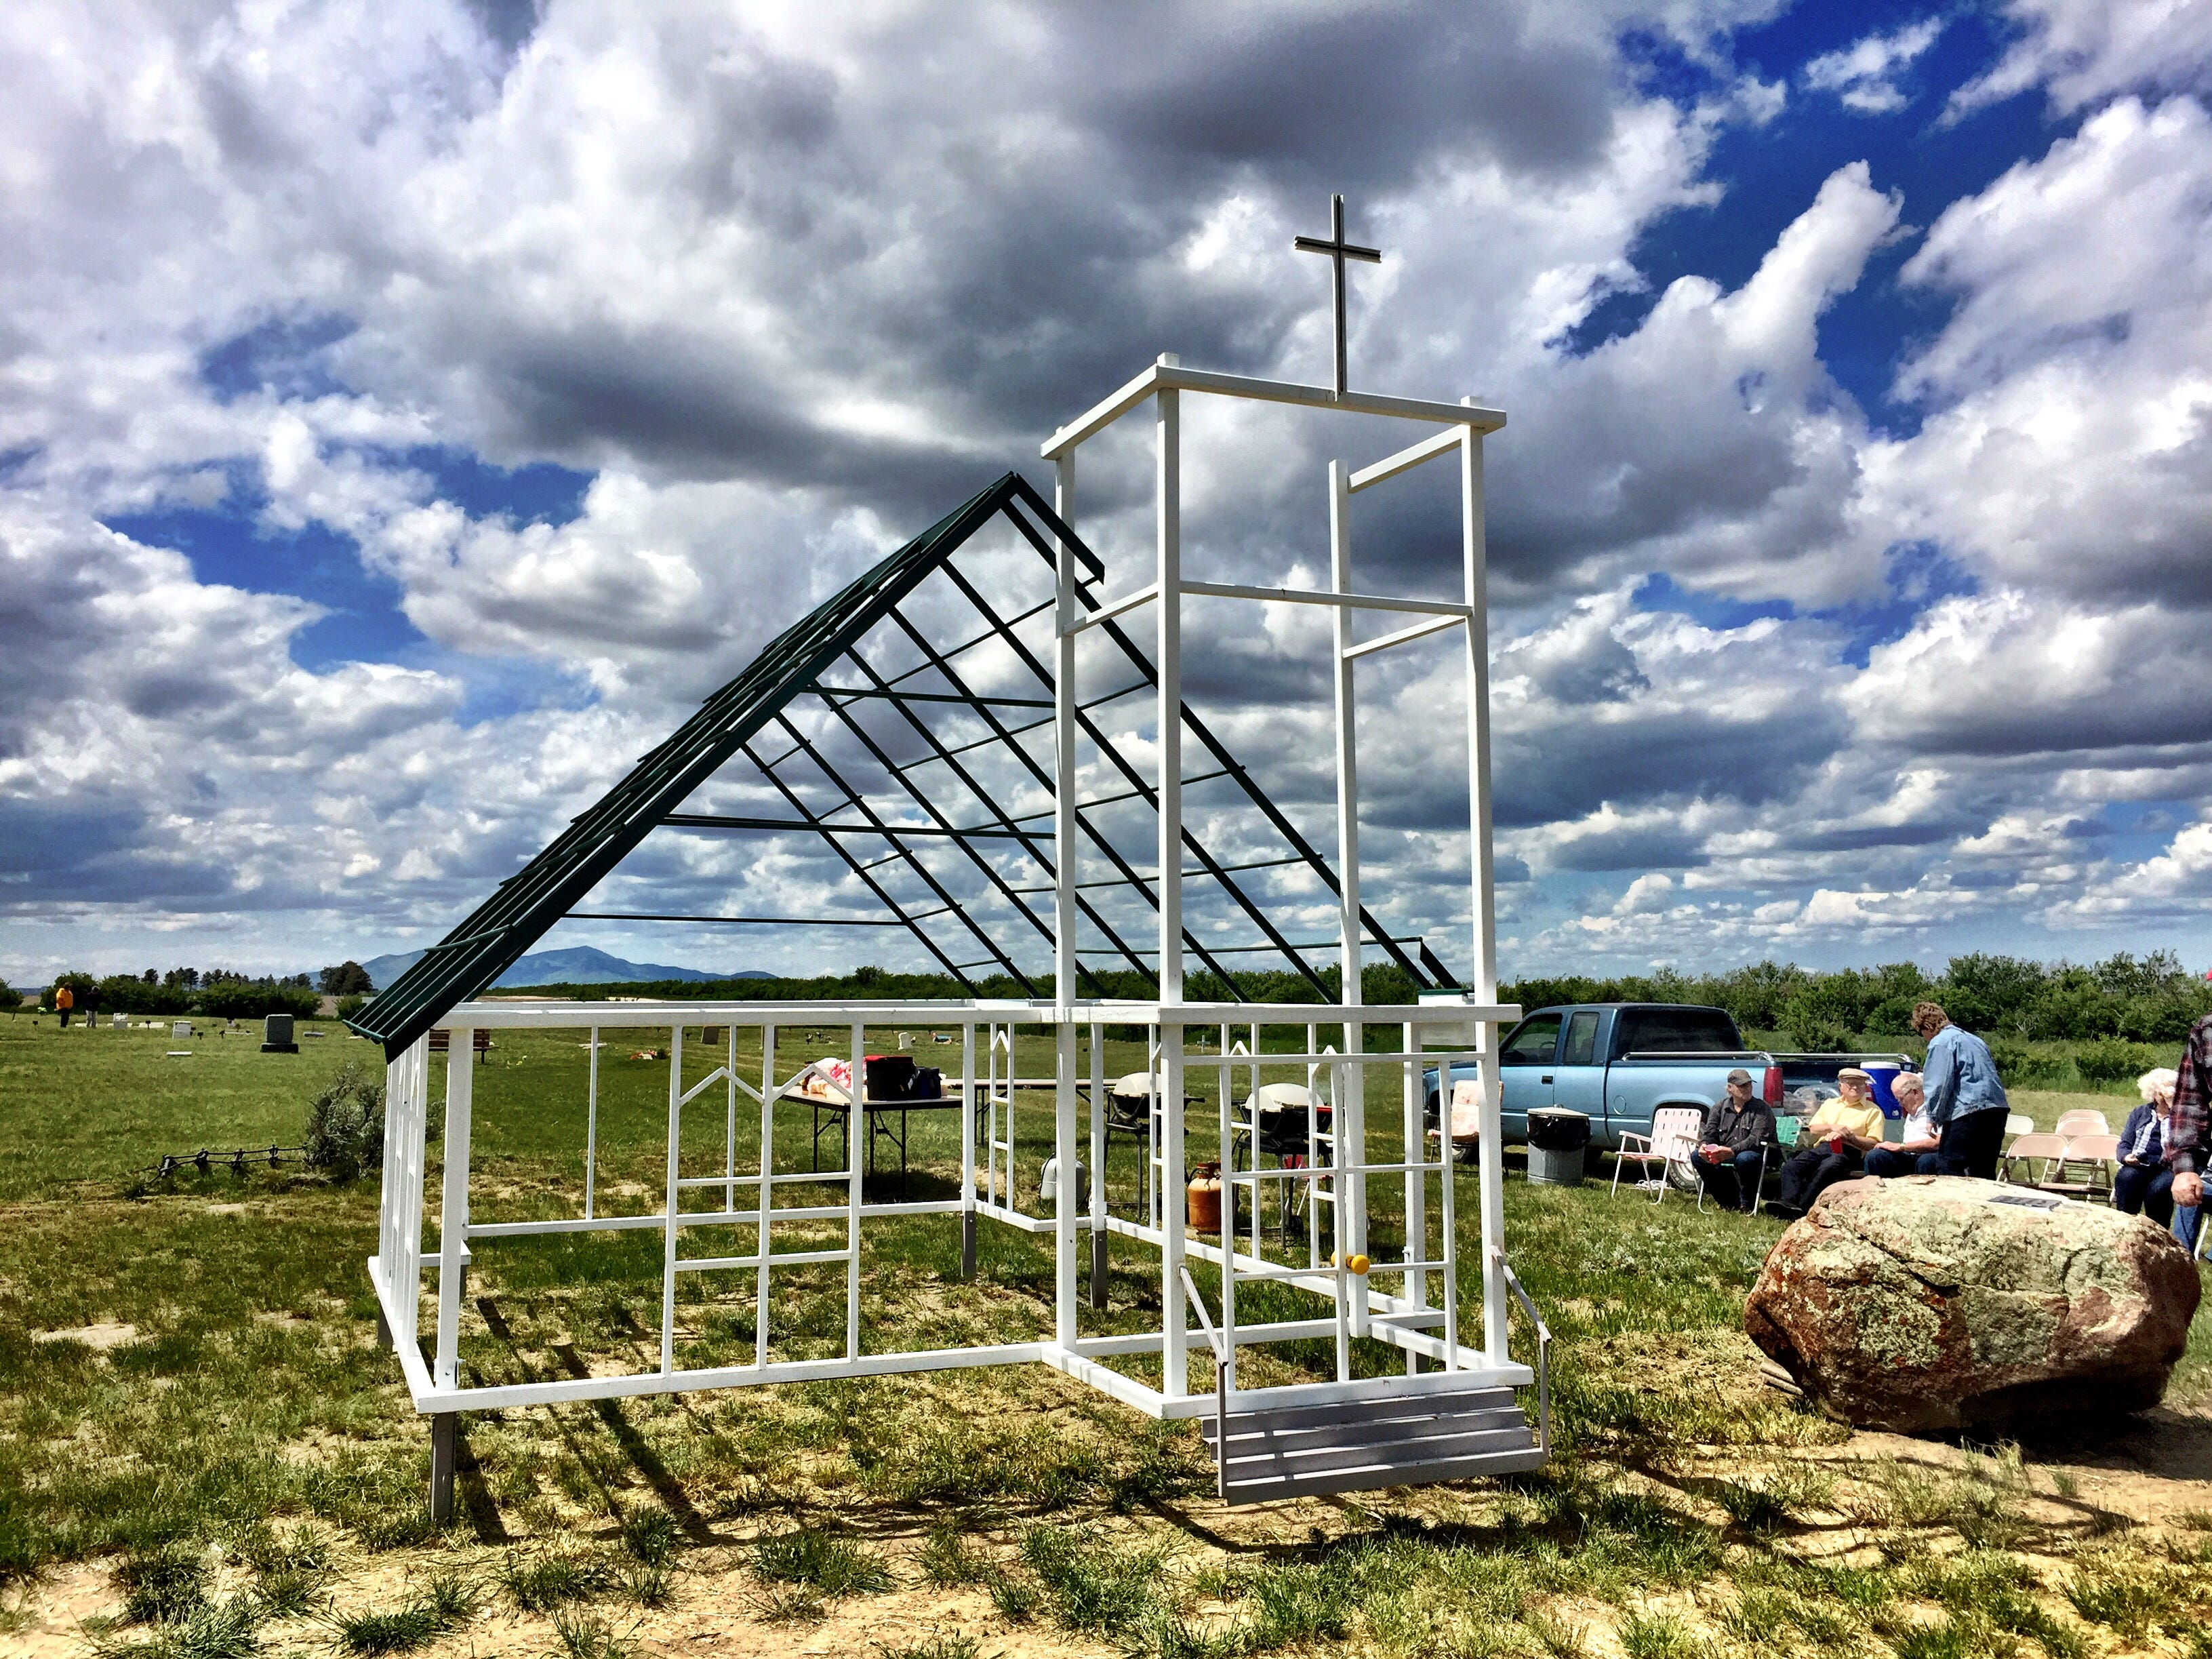 The Grace Evangelical Church is gone, but locals erected a scale model of the church north of Rudyard near the homestead community of Goldstone.